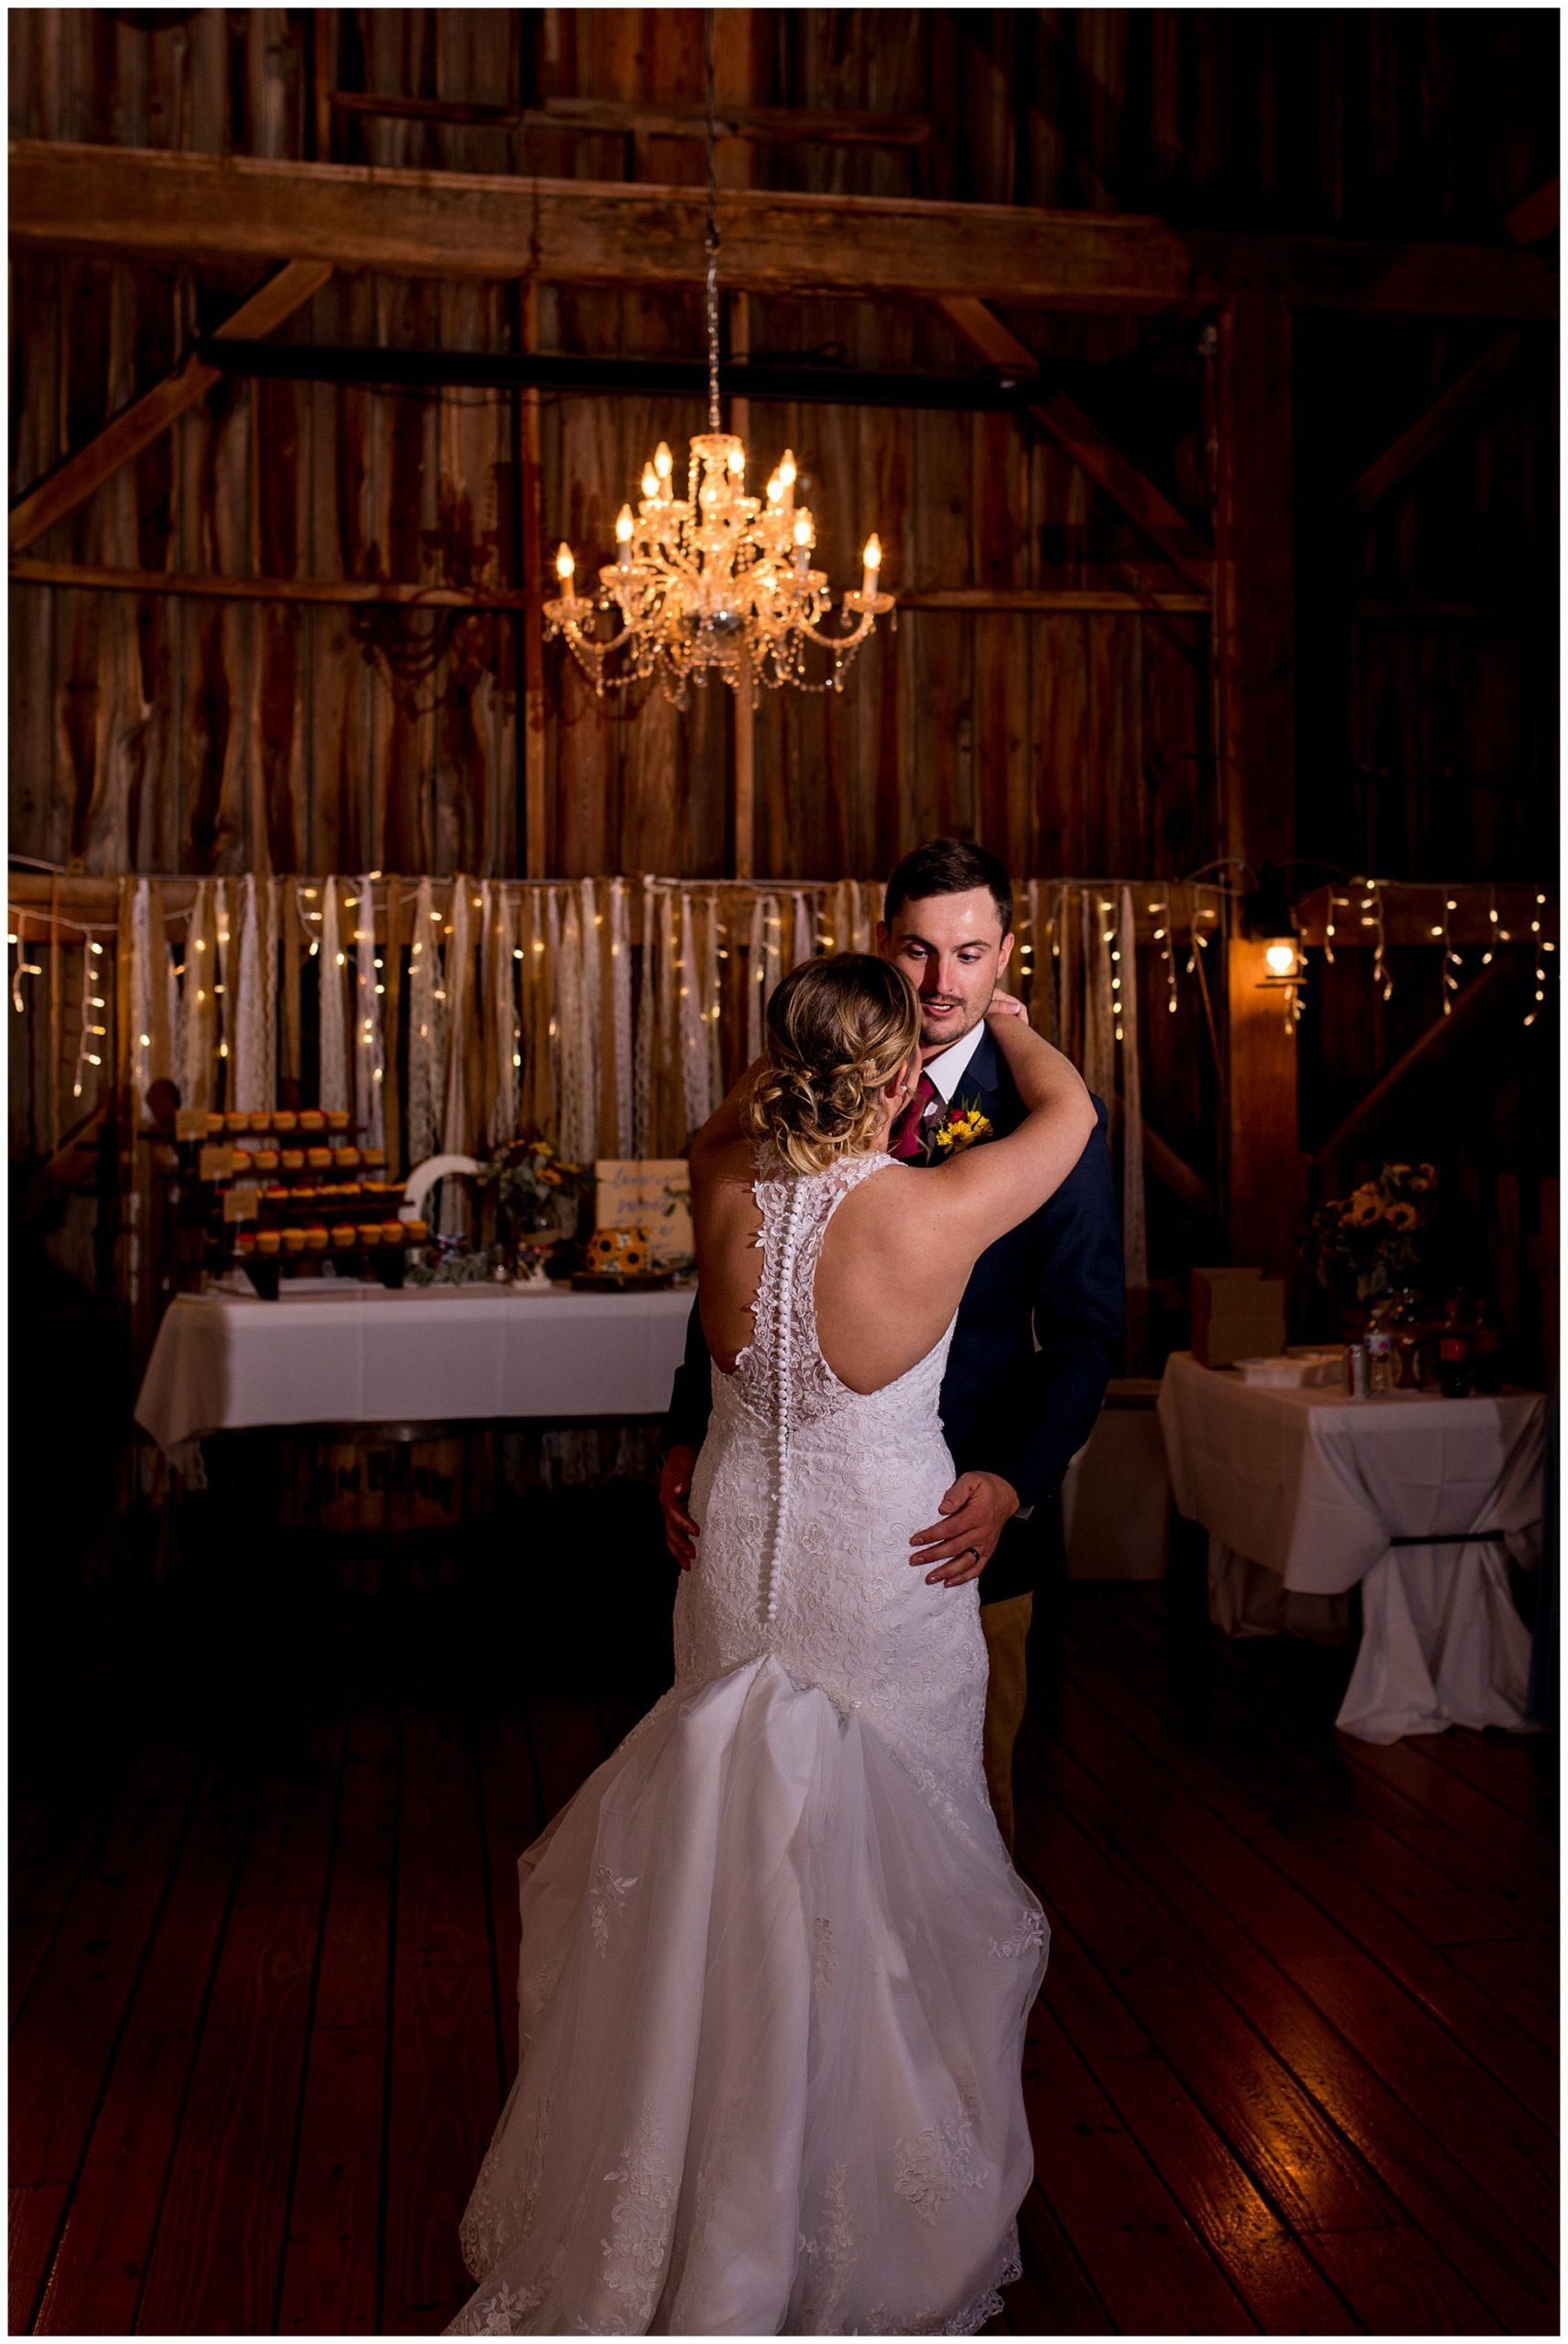 bride and groom first dance at Legacy Barn wedding reception in Kokomo Indiana